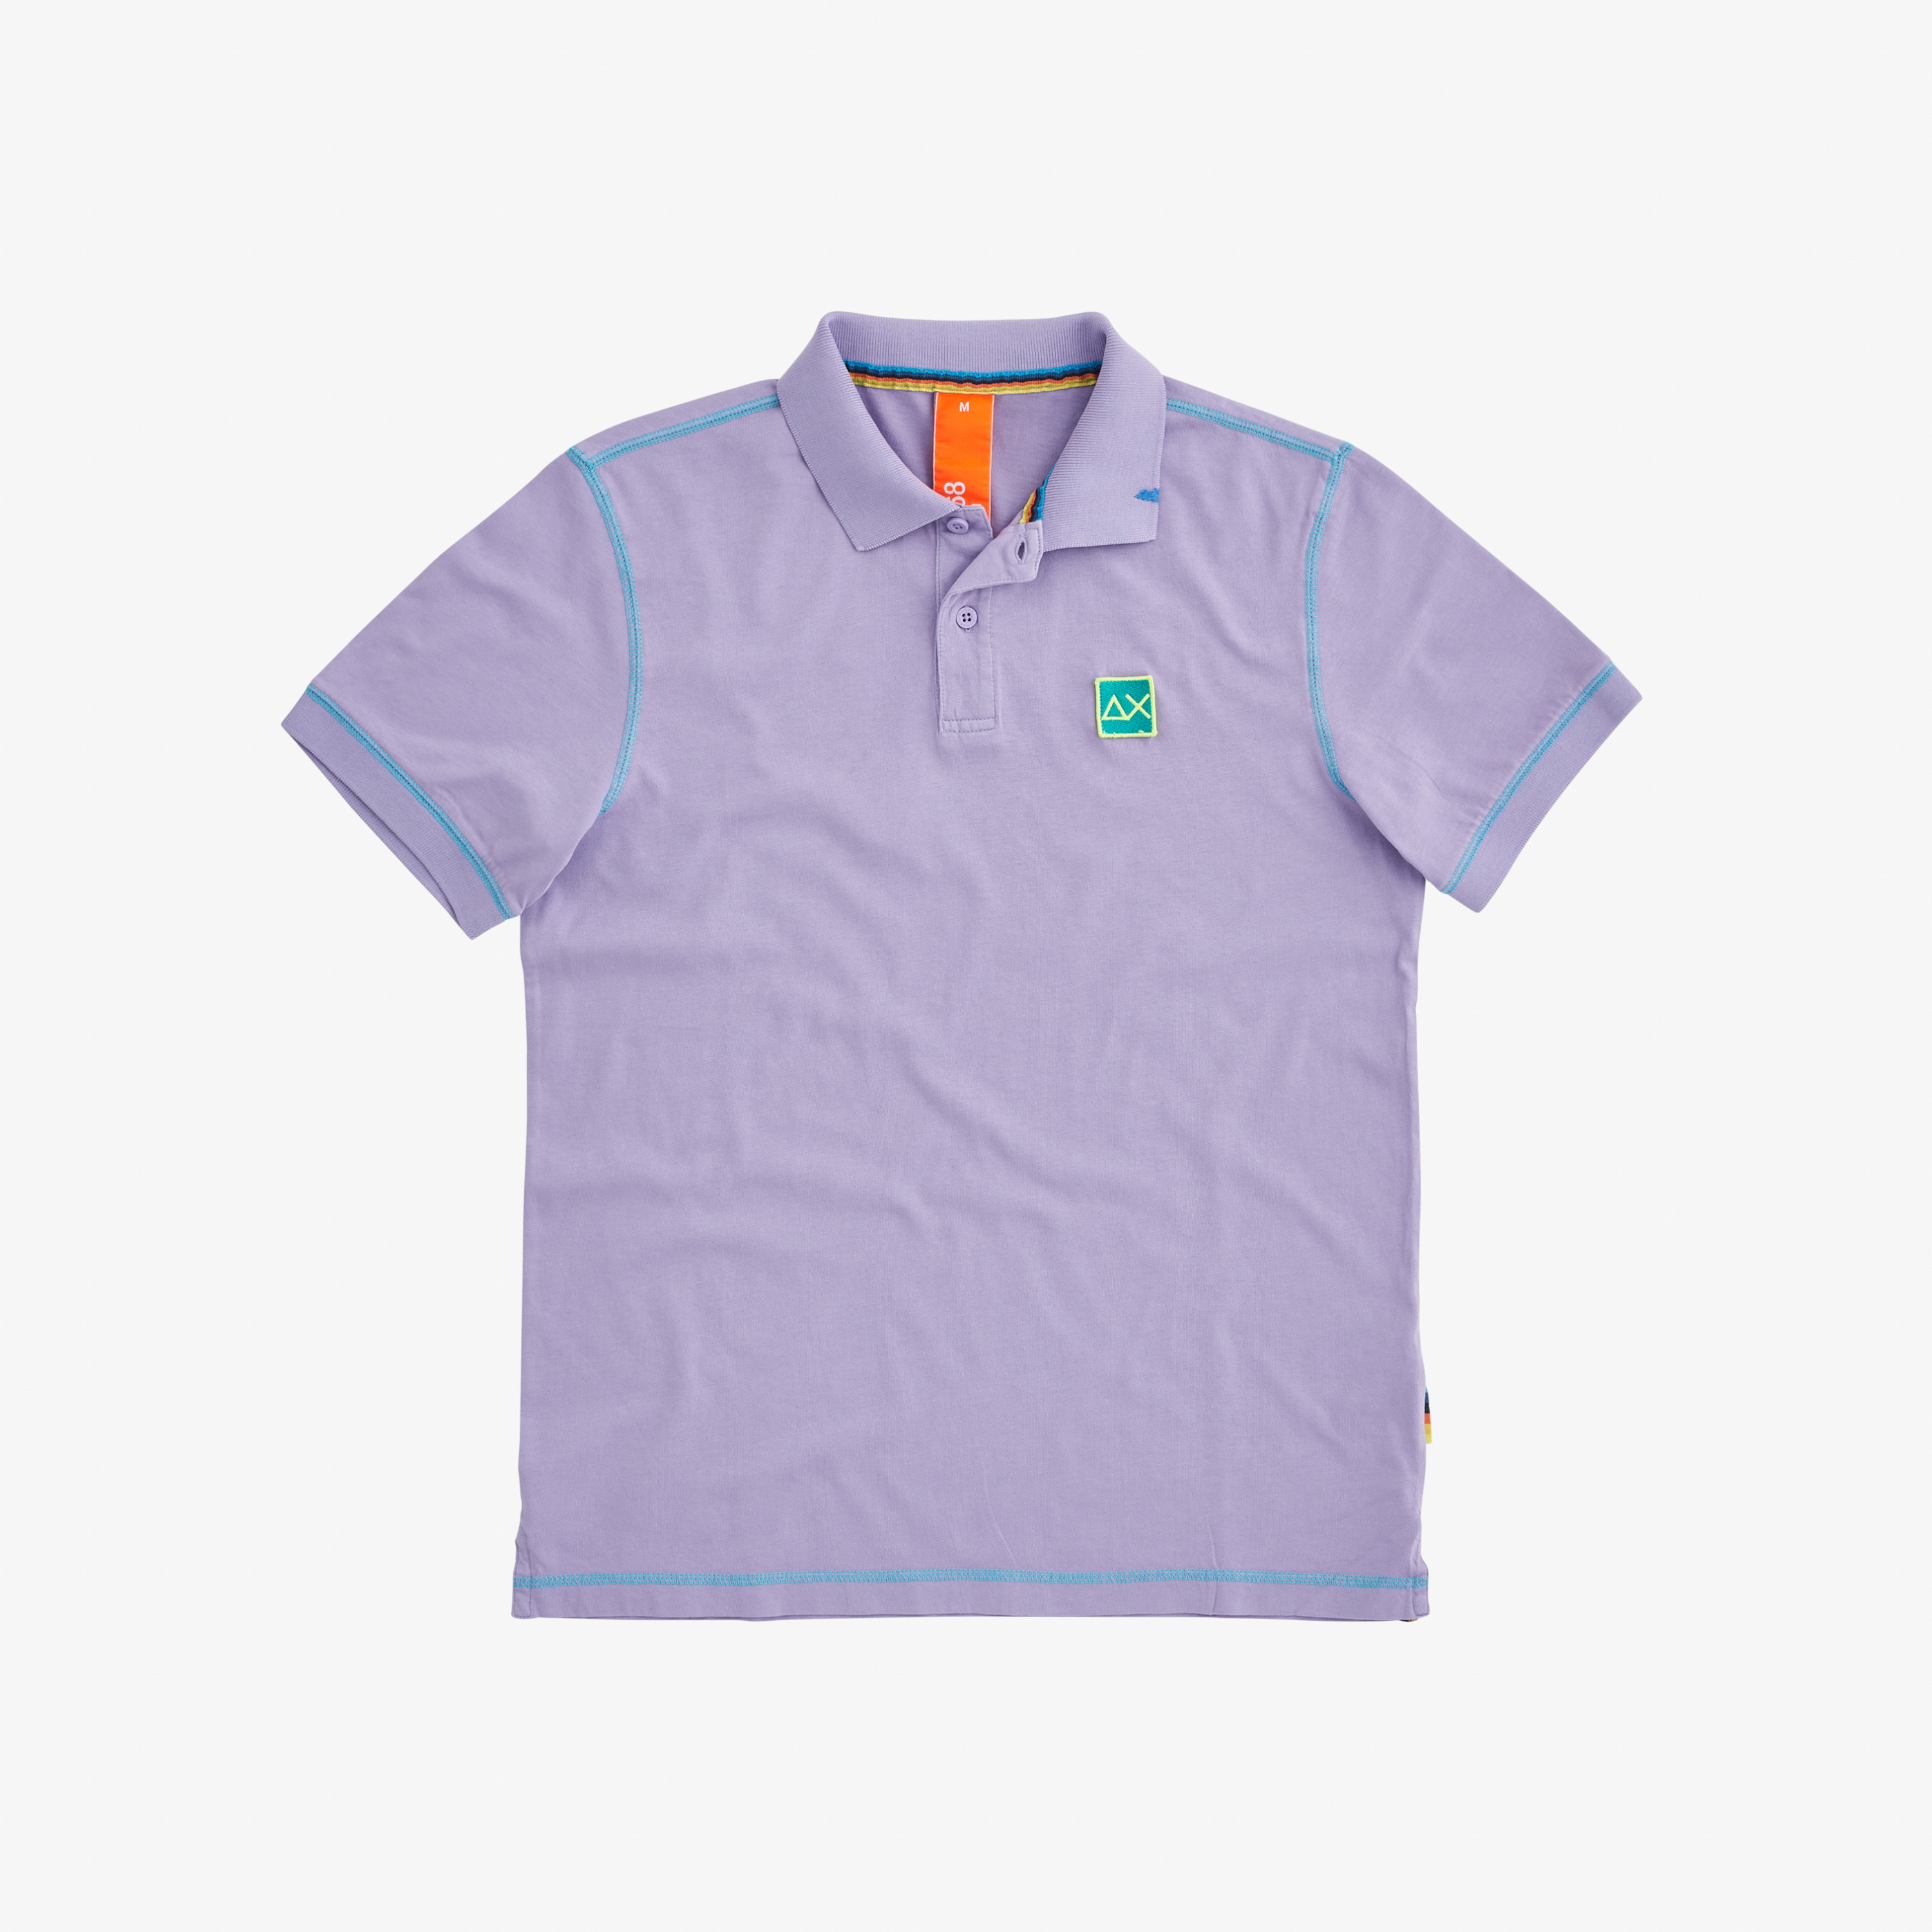 POLO COLD DYE CONTRAST STITCHING LAVENDER